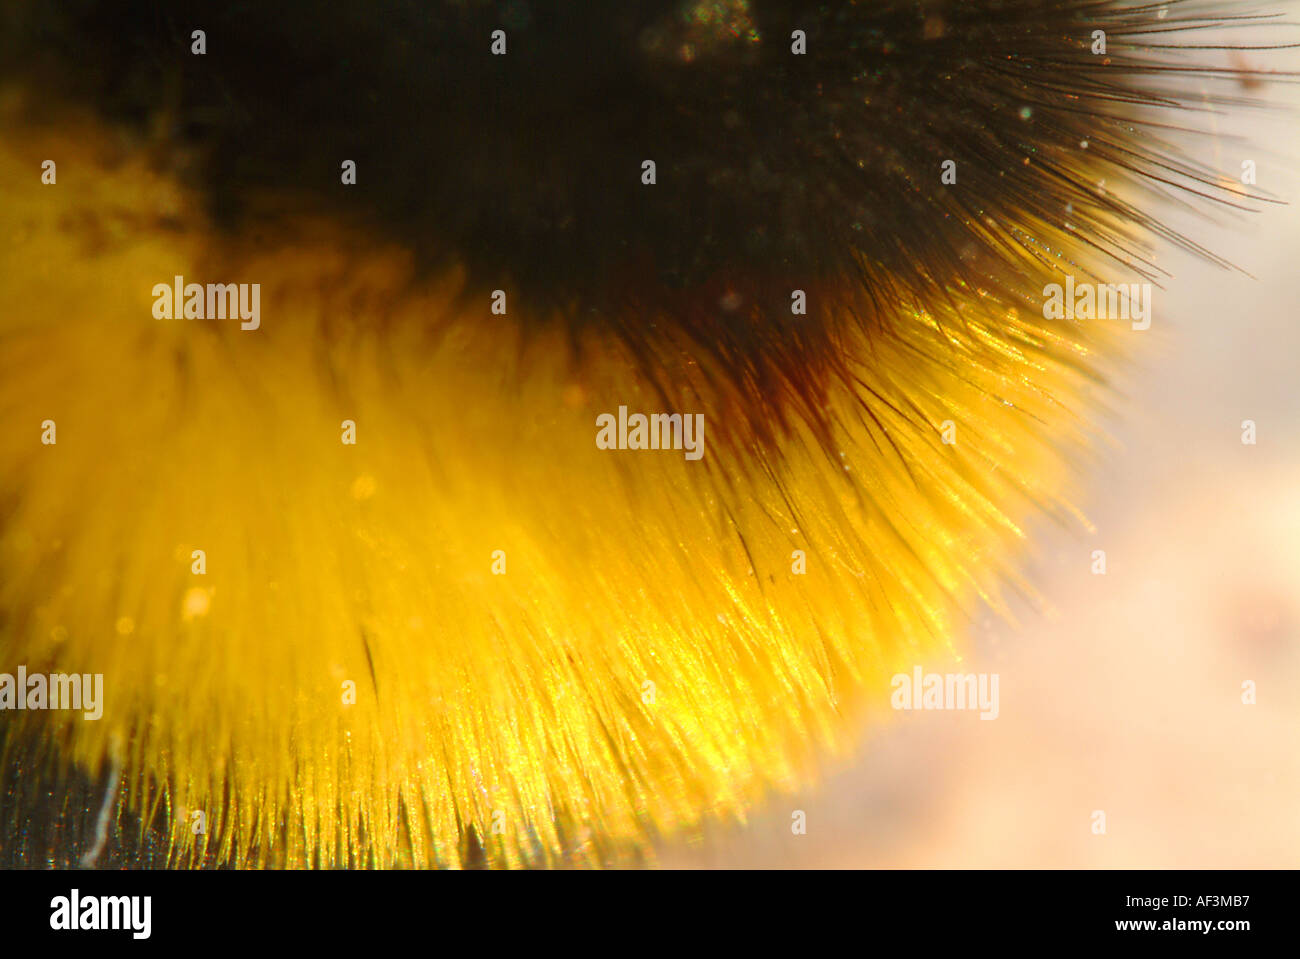 Extreme macro shot of the coat texture of a common british bumble bee - Stock Image